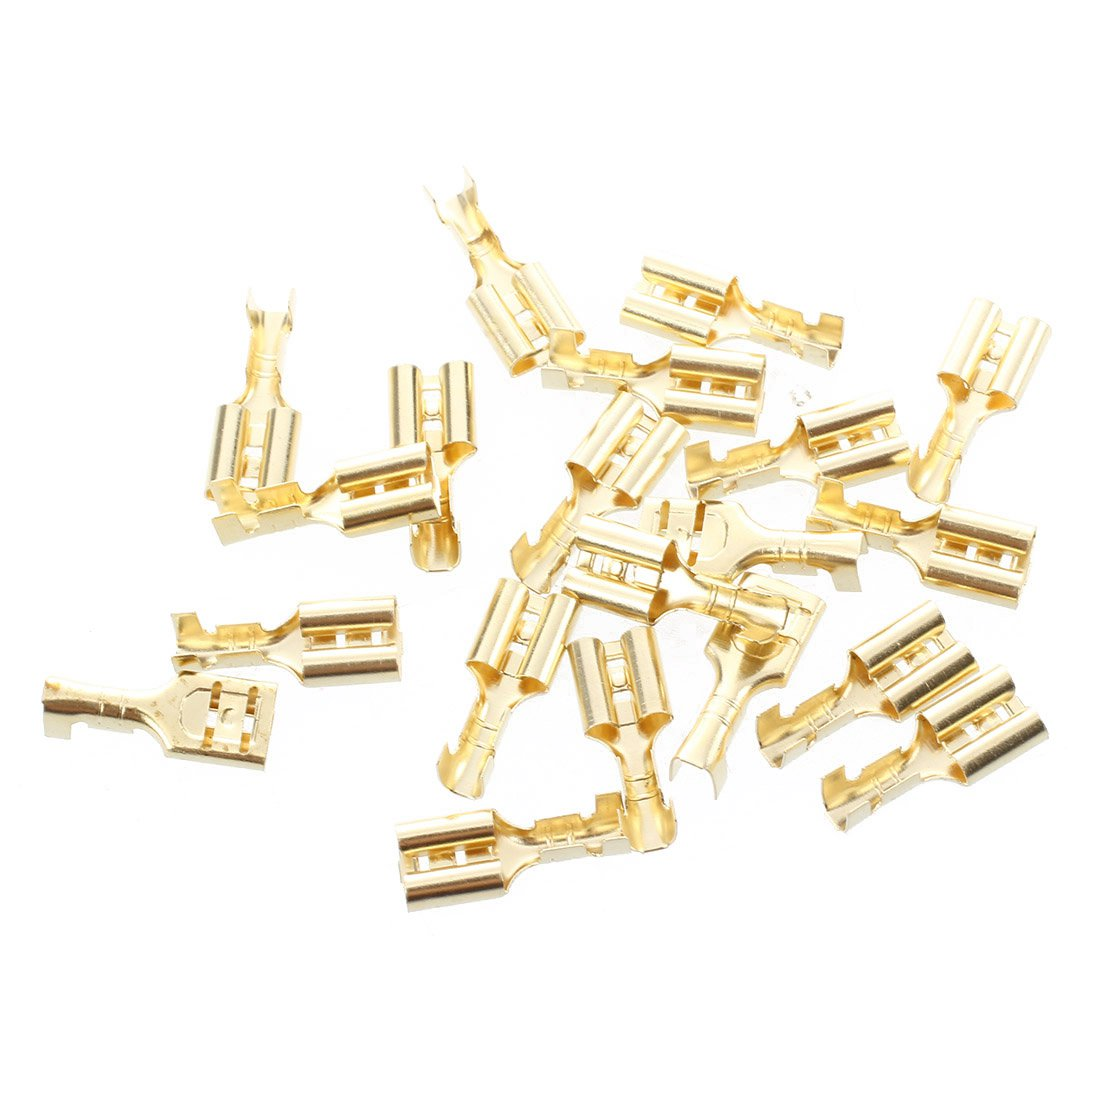 20 Pcs Gold Tone Brass Crimp Terminal 6 7mm Female Spade Connectors in Terminals from Home Improvement